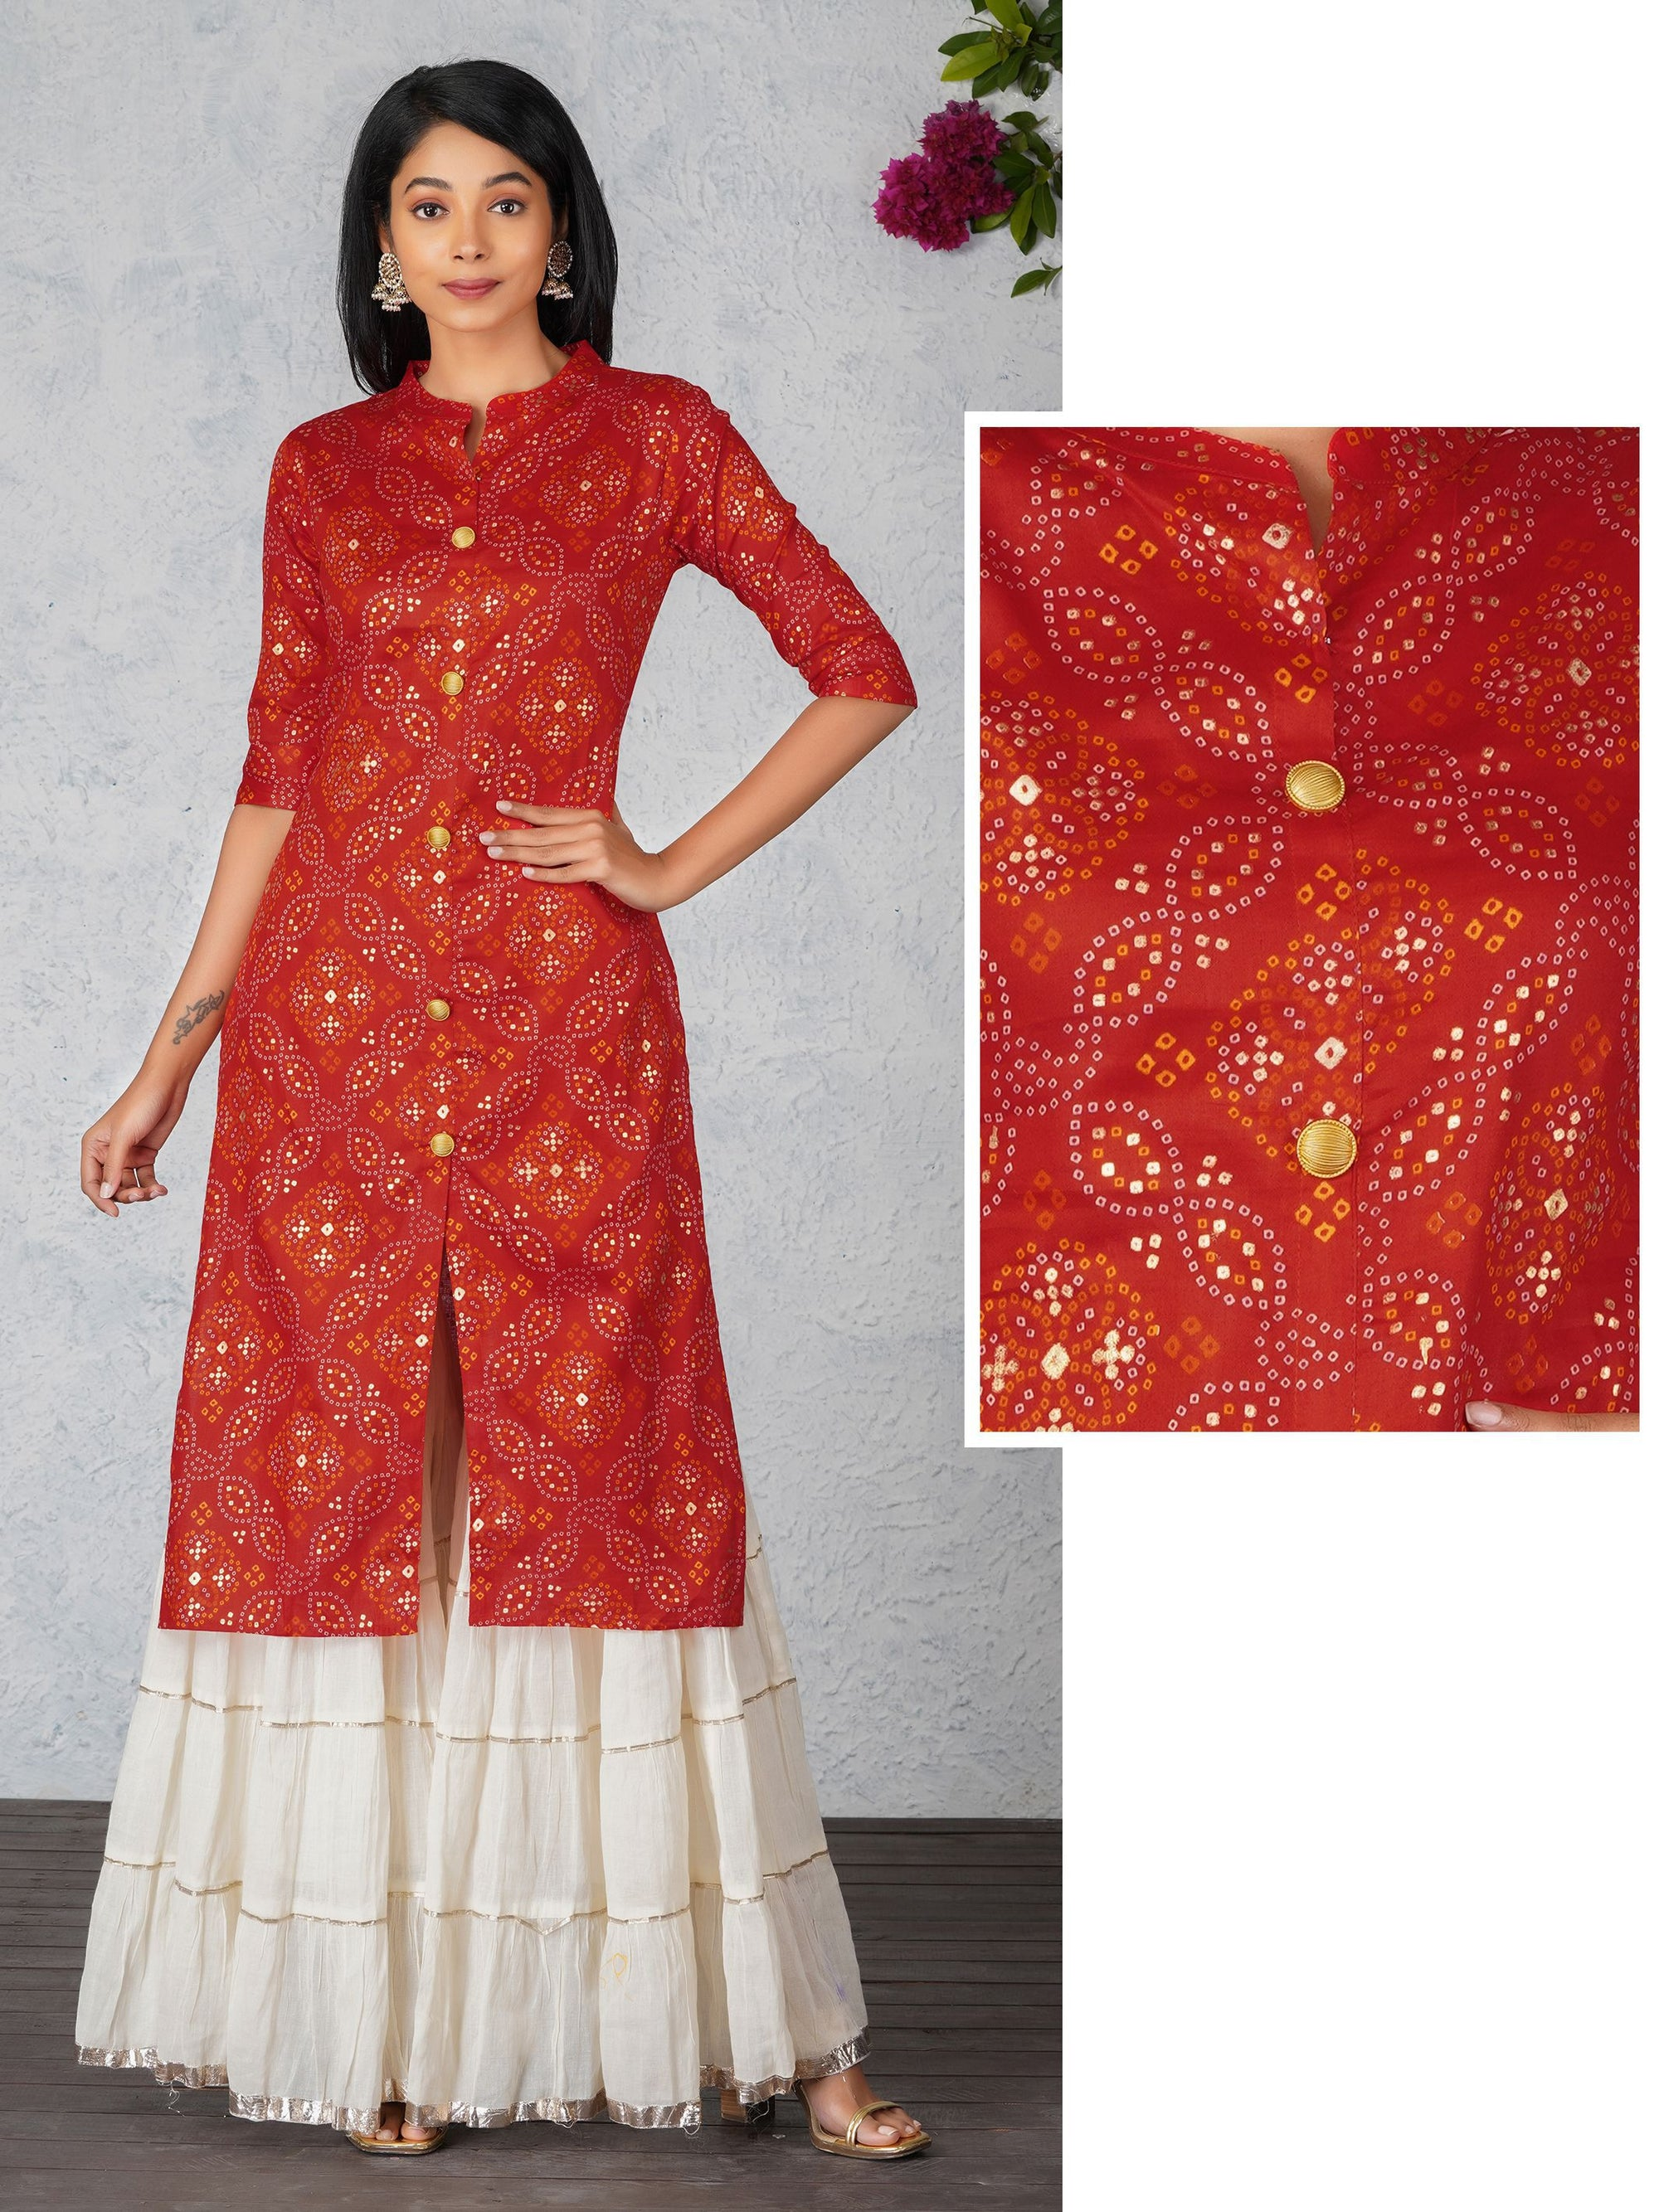 Bandhani Print With Gold Highlighted Kurta - Red